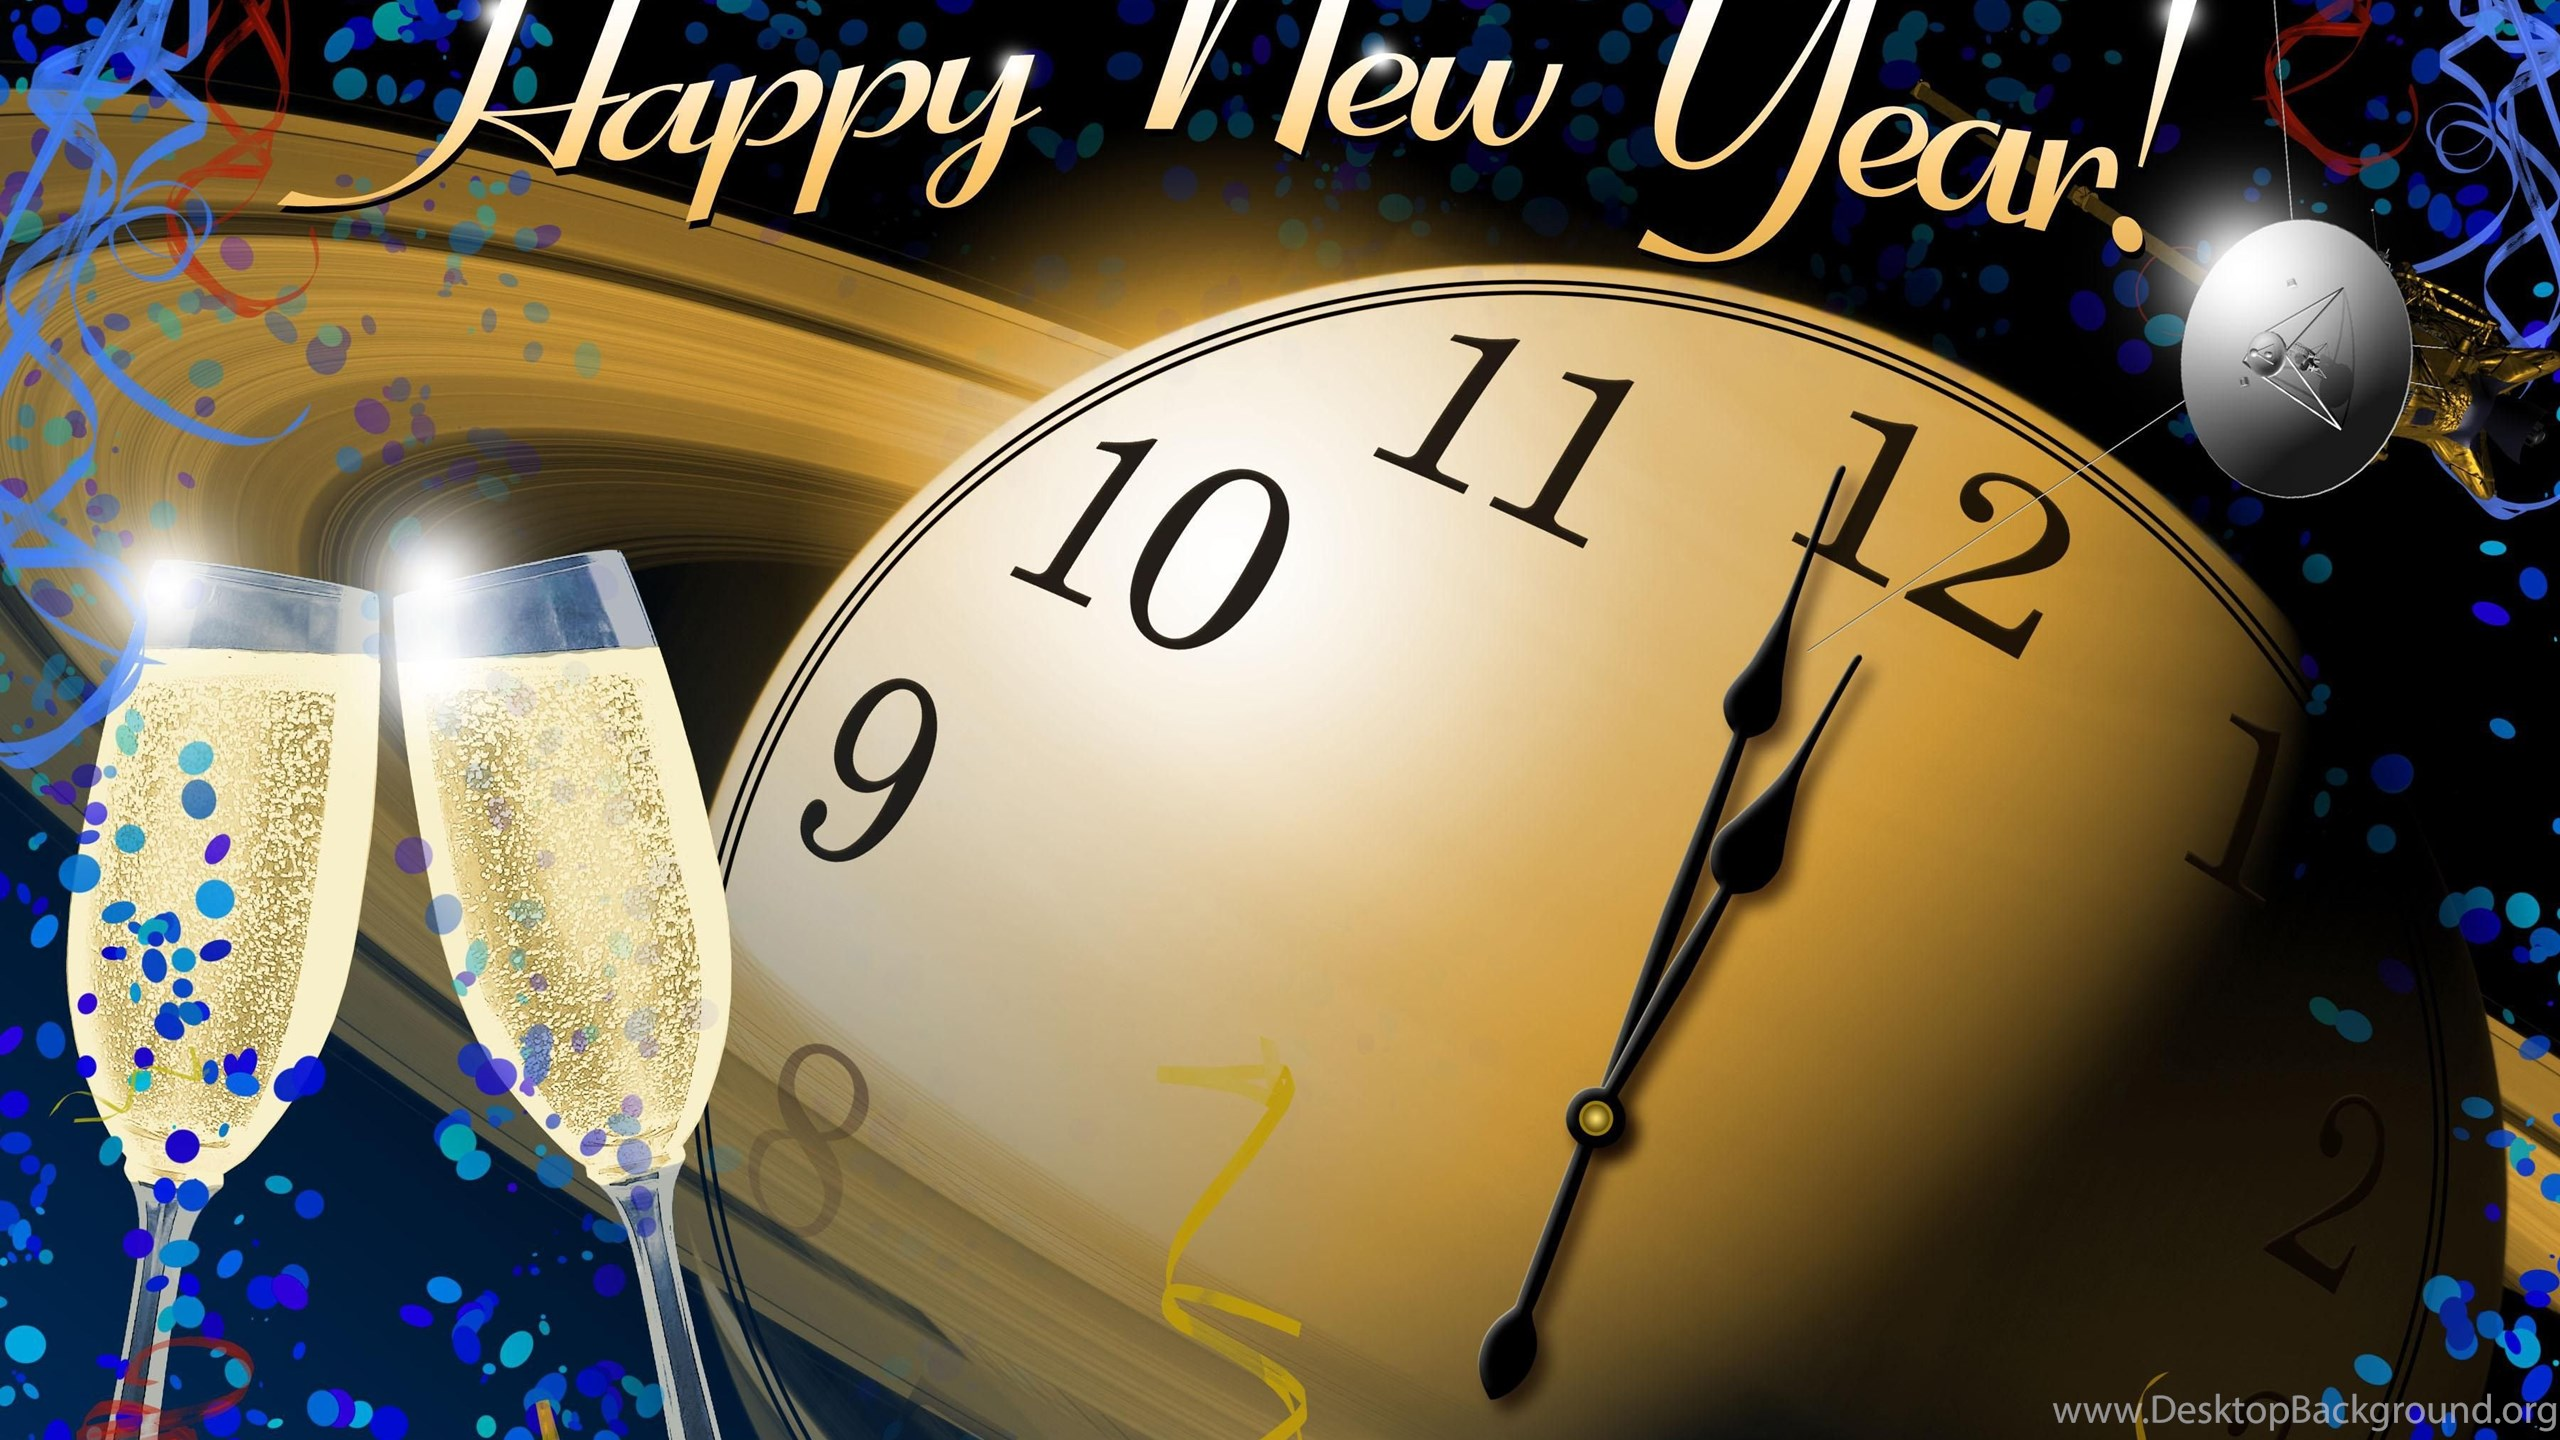 happy new year hd wallpaper free for 2014 desktop background